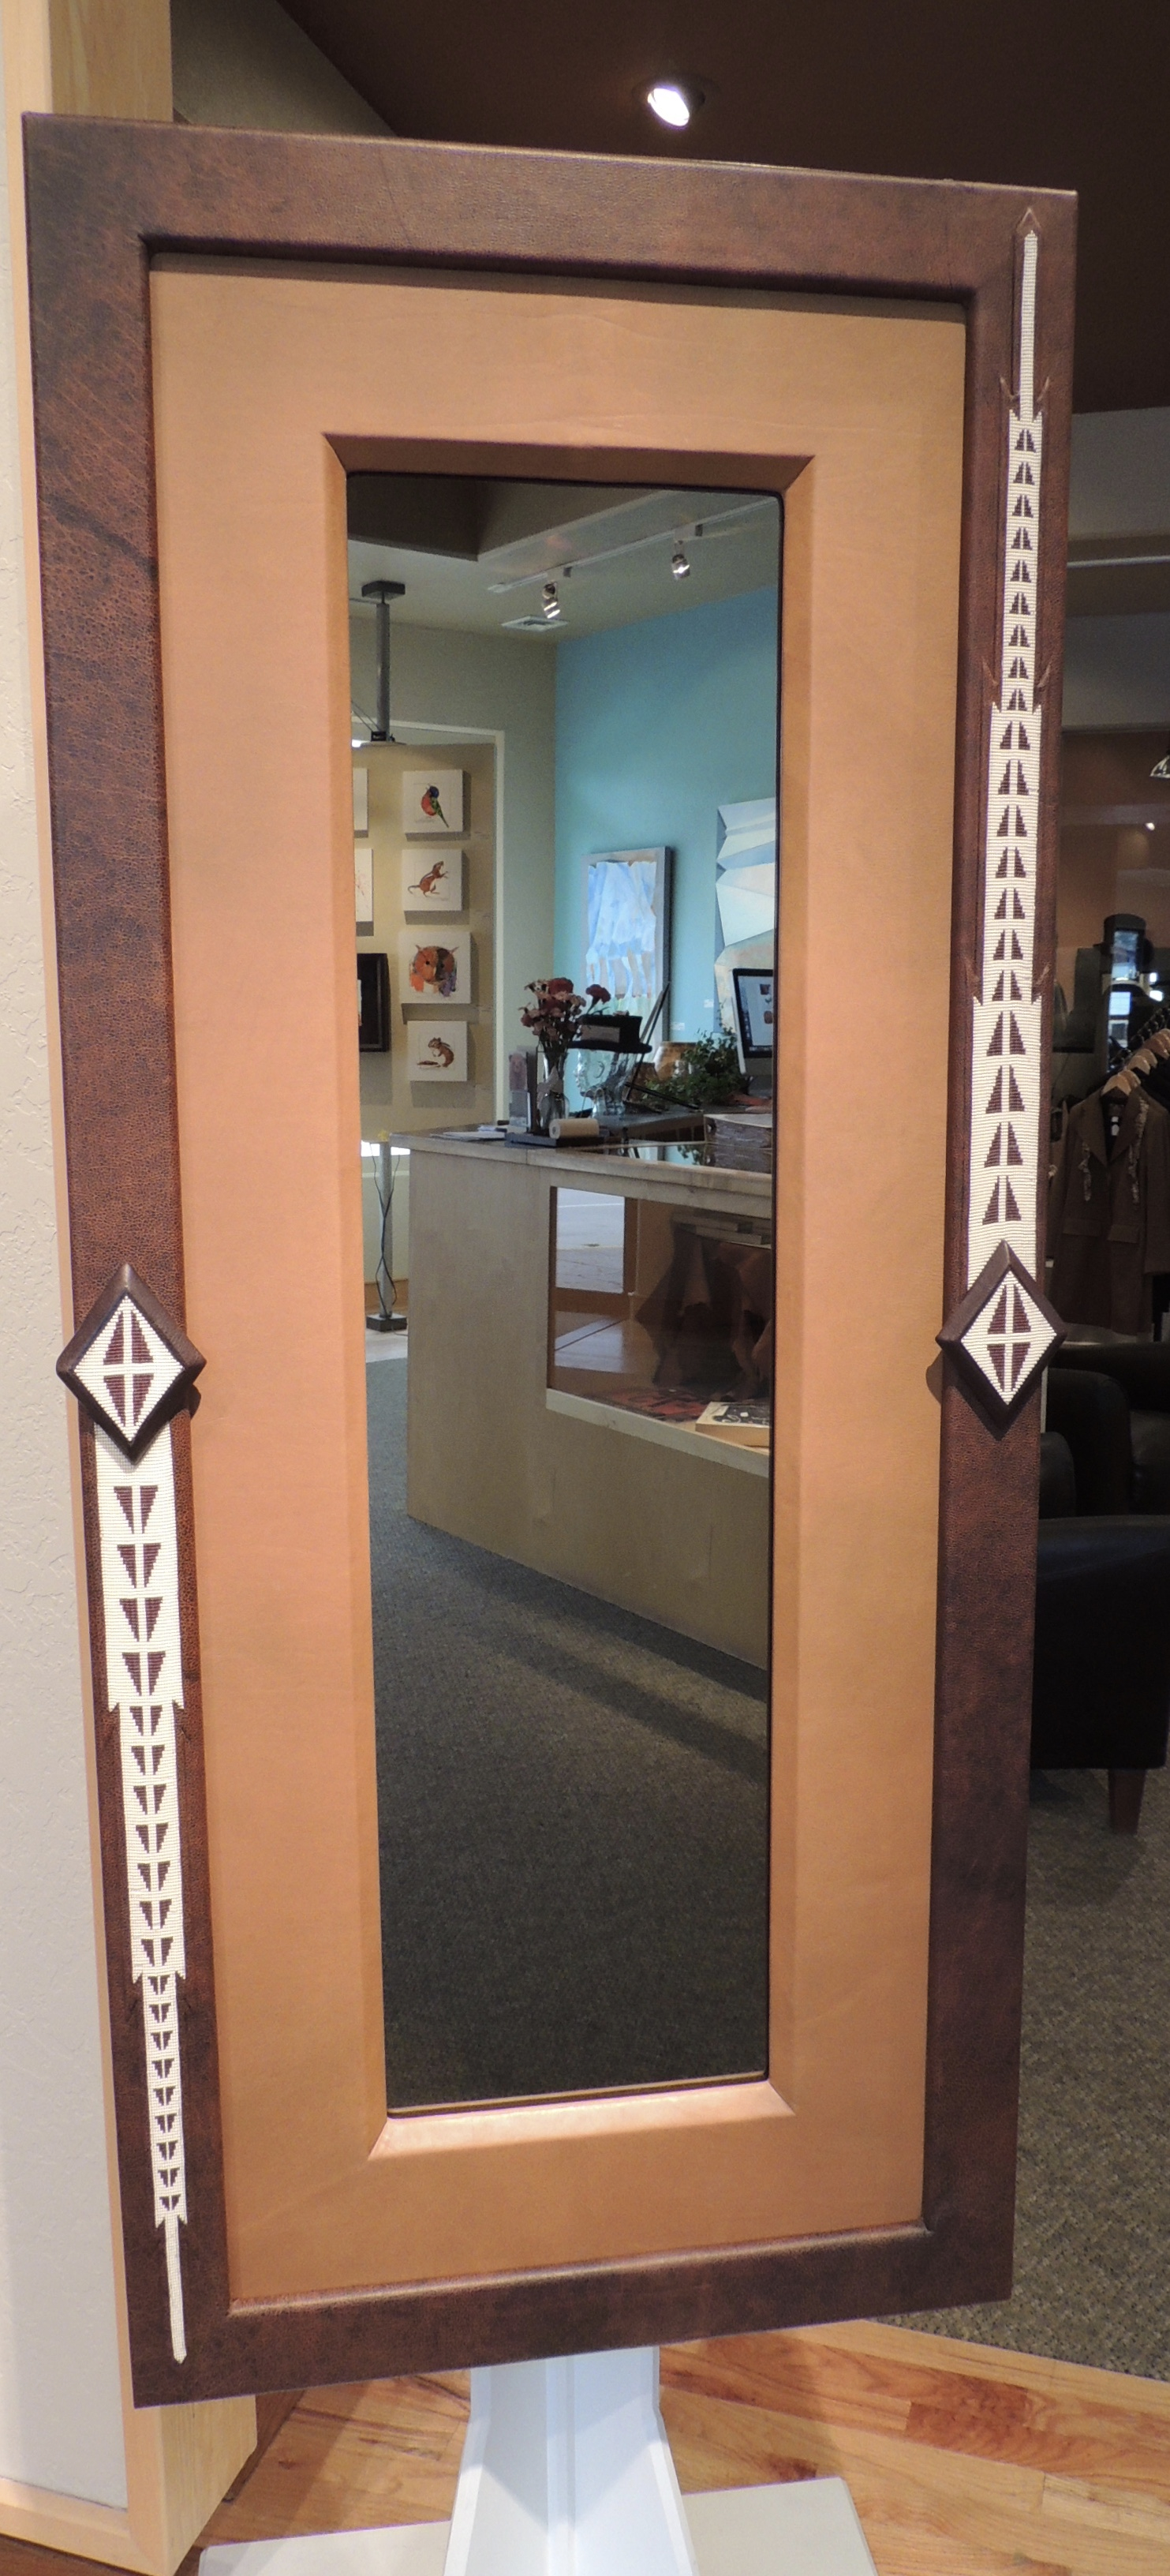 Bison Leather Mirror